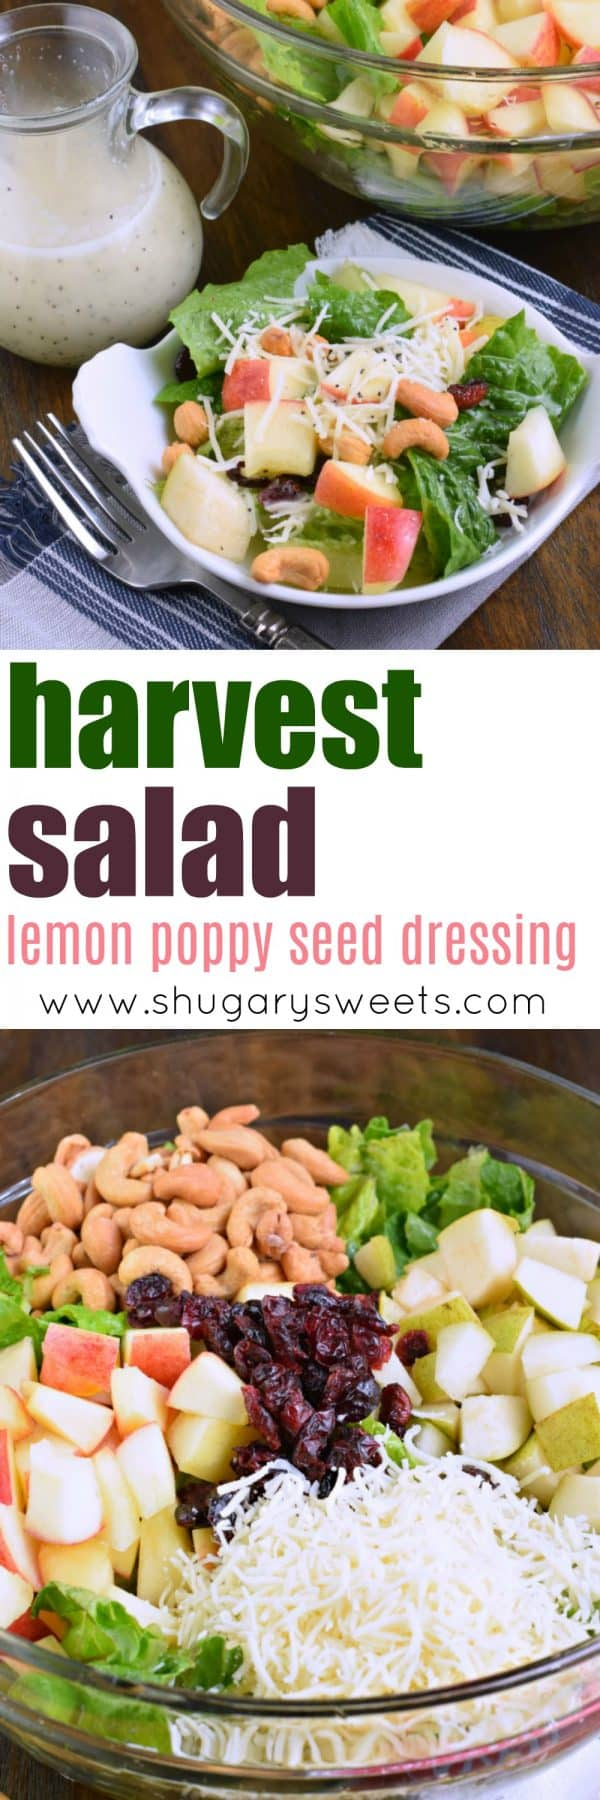 Harvest salad with lemon poppy seed dressing and crunch pak apples